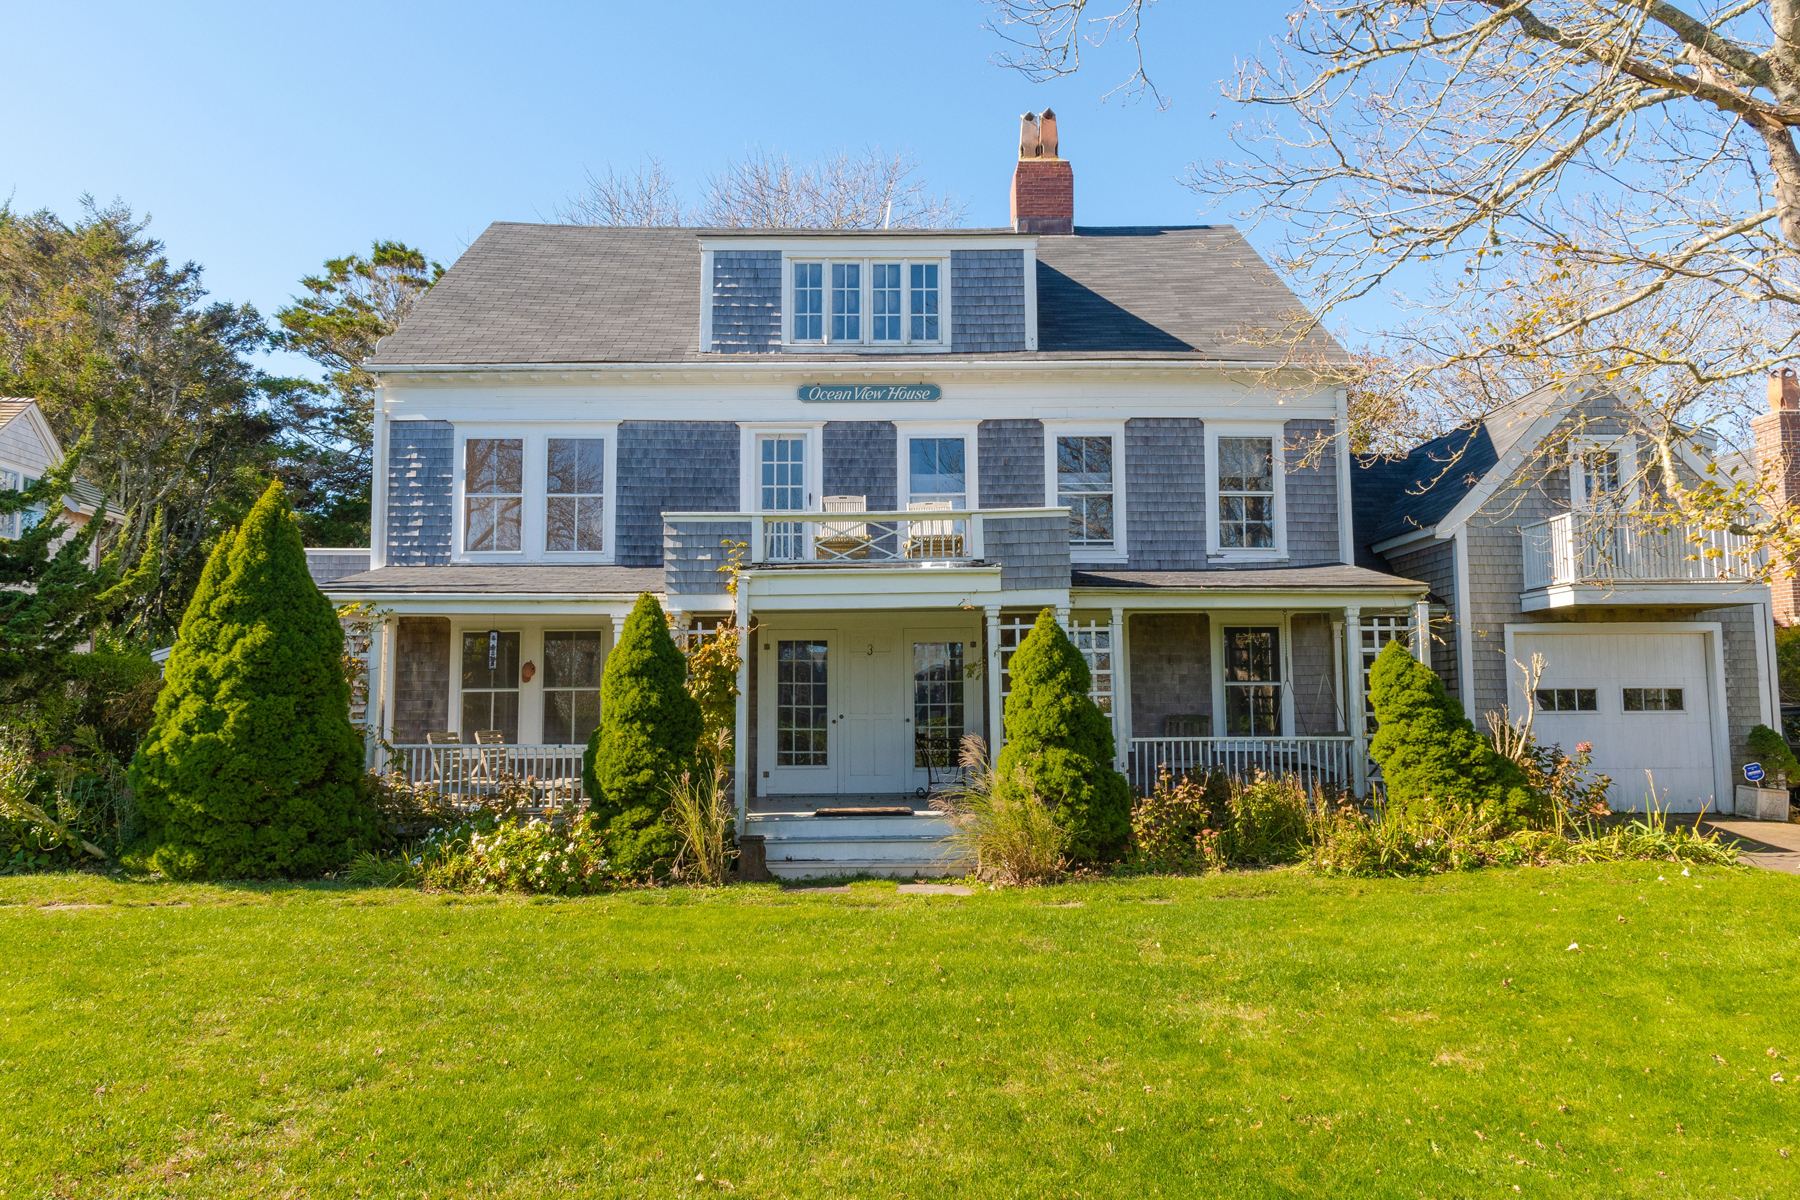 Single Family Homes for Sale at The Ocean View House - Iconic and Fabulous 3 Grand Avenue Siasconset, Massachusetts 02564 United States